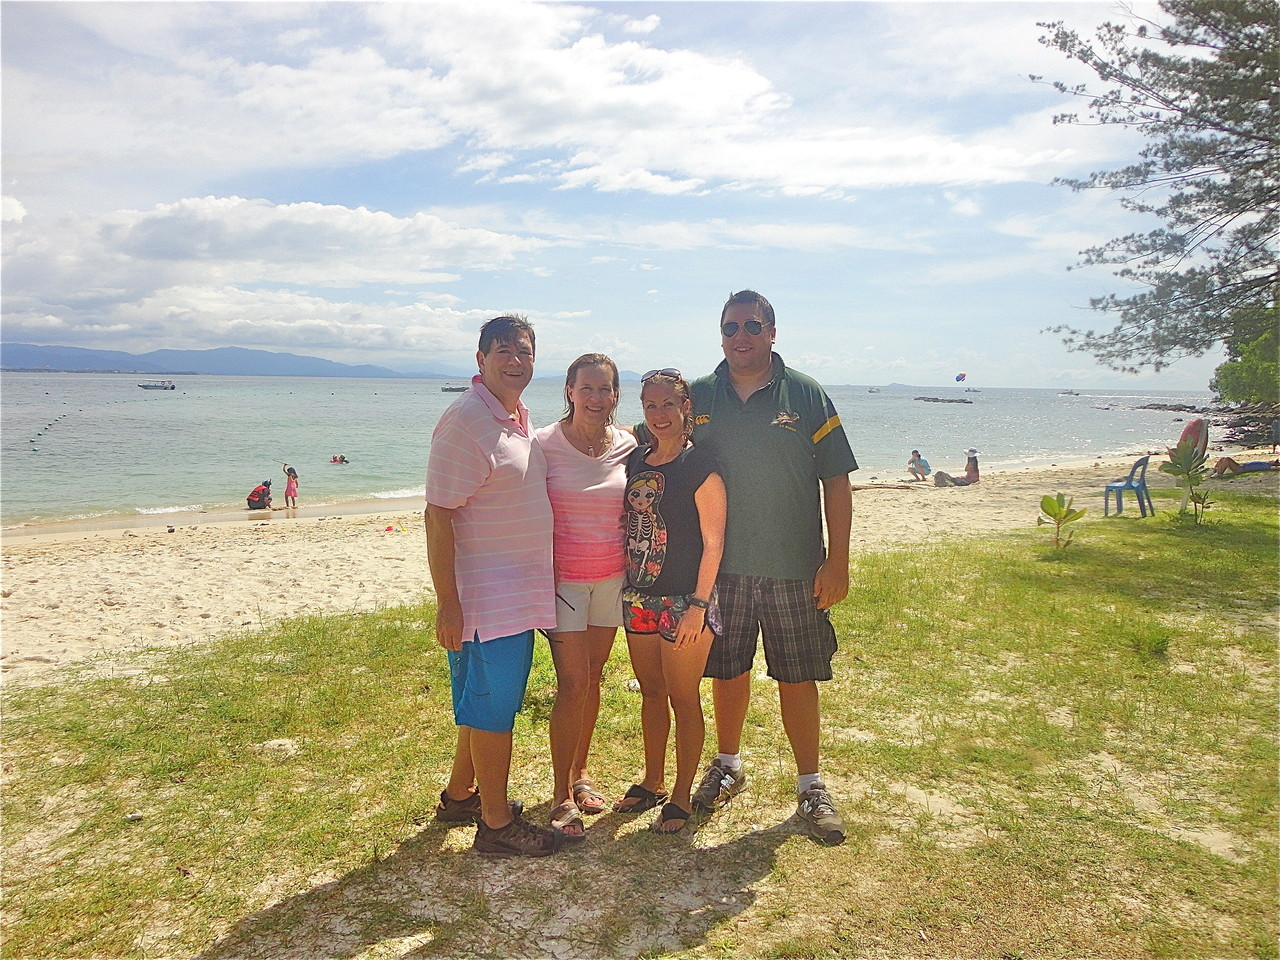 John, Lorraine, Emily, & Greg on the beach, Mamutik island, one of the 3 islands in the Tunku Abdul Rahman Park.